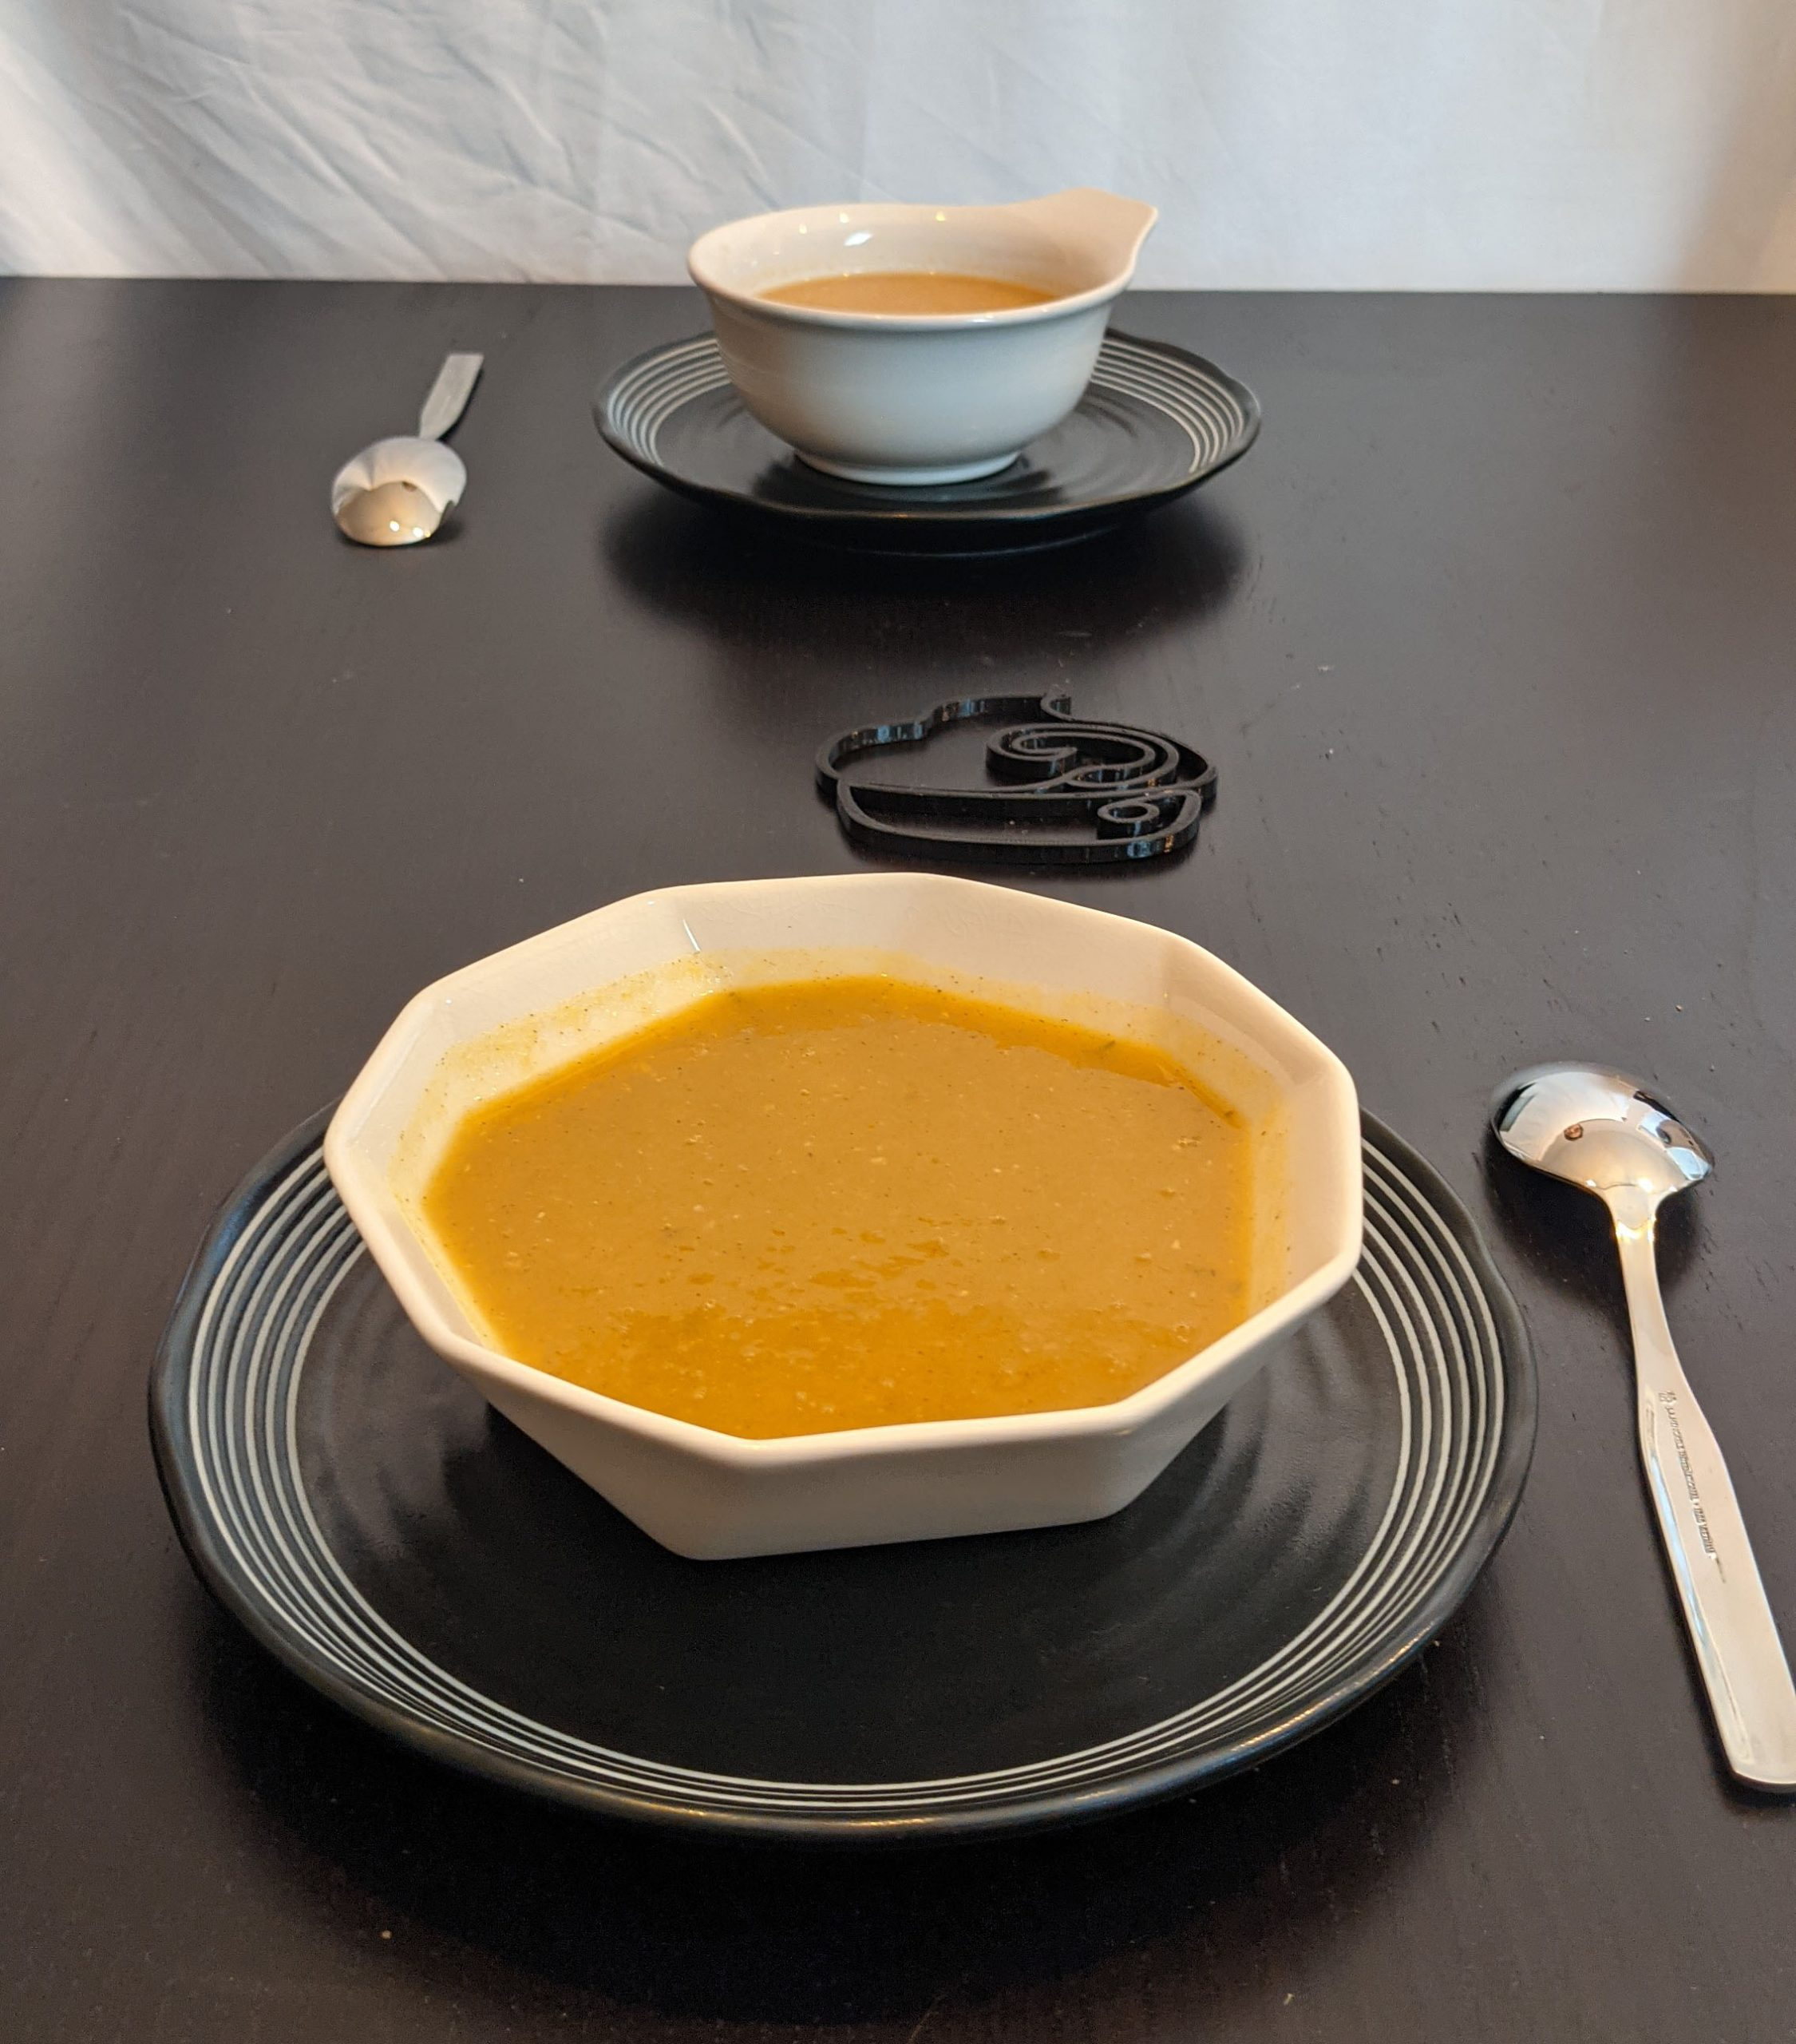 Butternut Squash Soup with another bowl on table